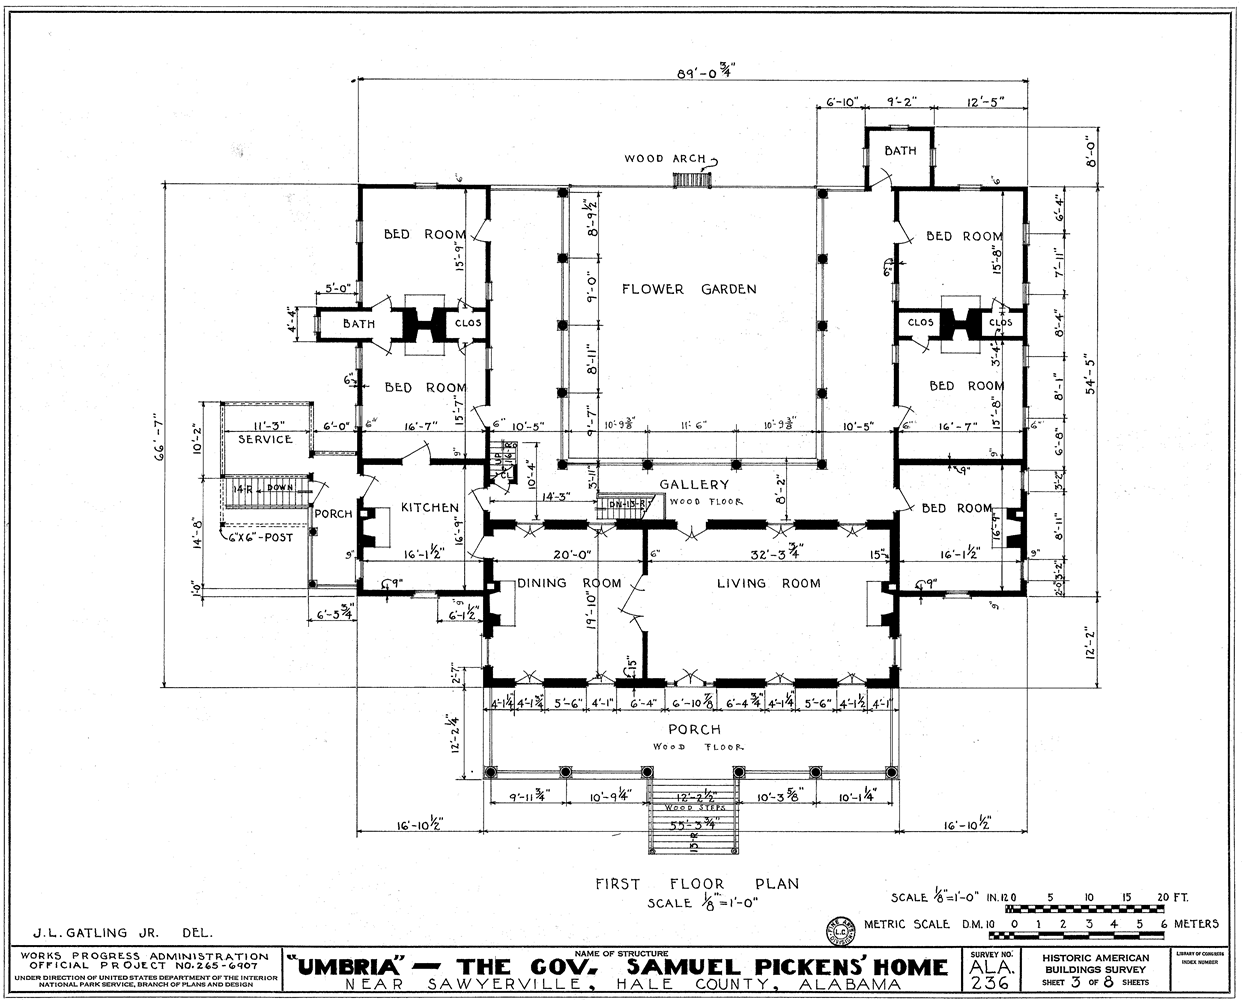 House plans and design architectural house designs floor for Architecture design for home plans